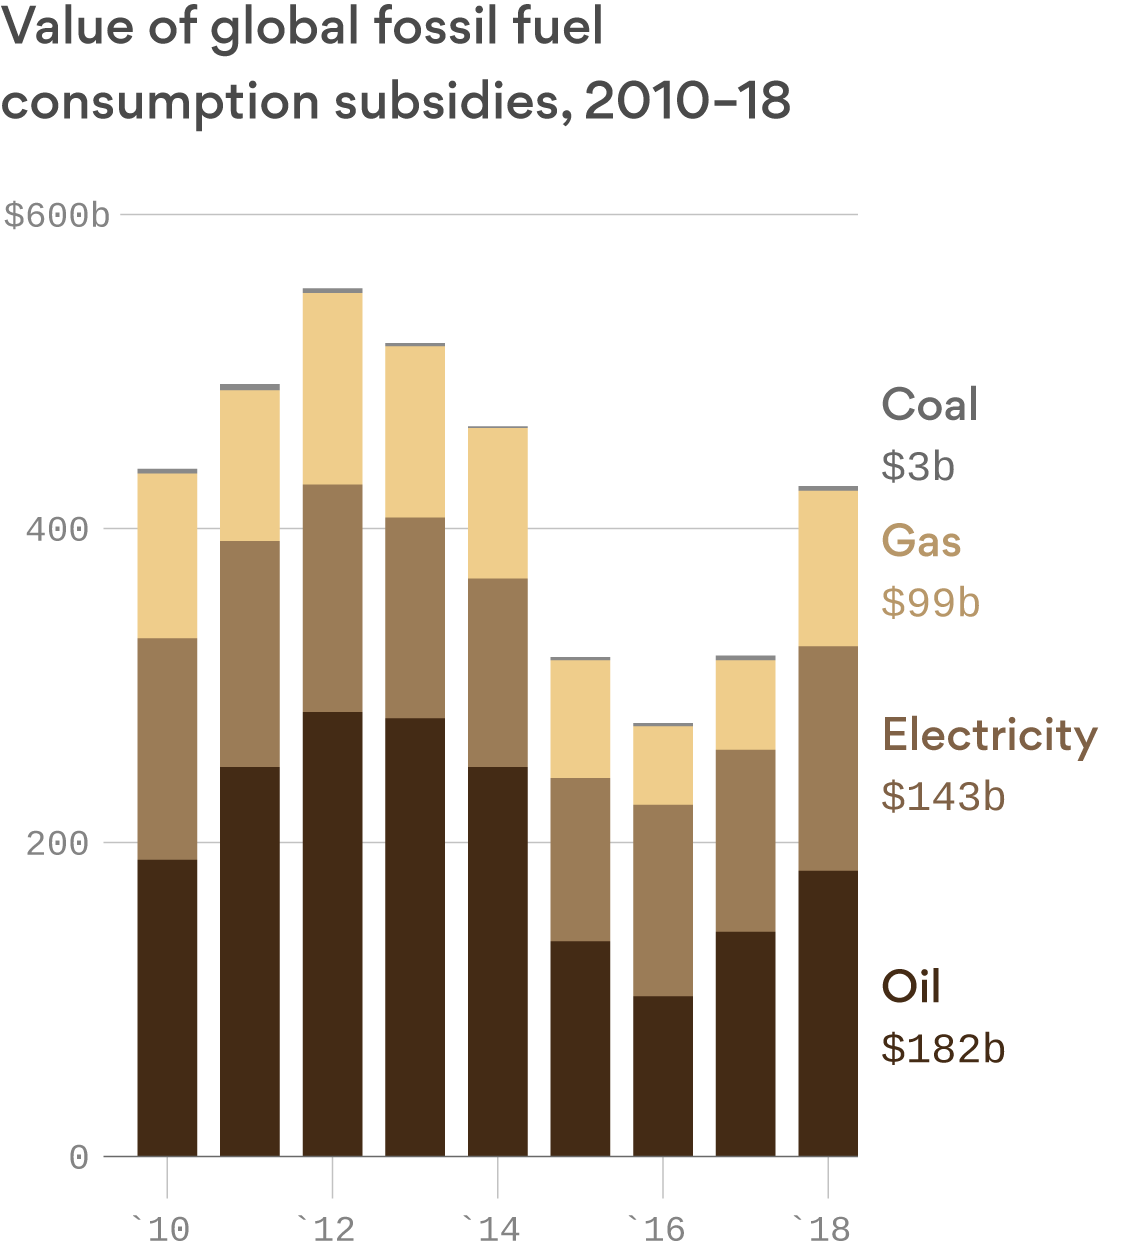 Worldwide subsidies to lower the cost of fossil fuels hit $400 billion in 2018